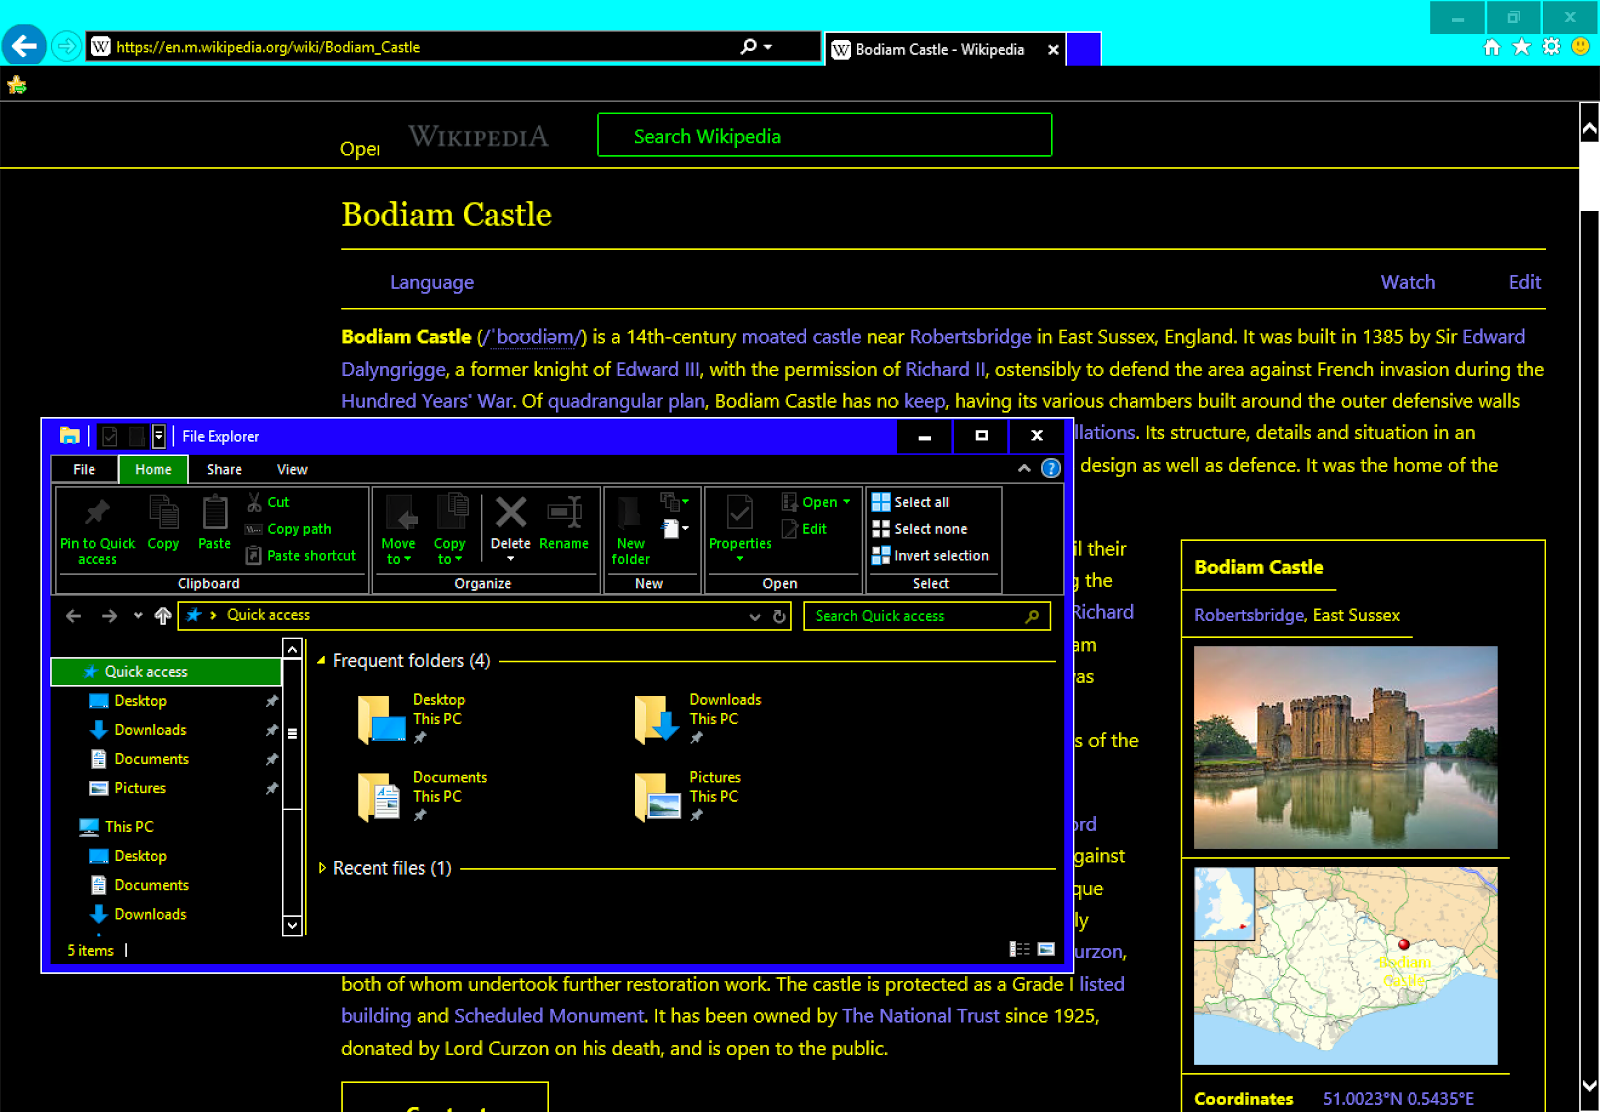 Browser window in high contrast mode.